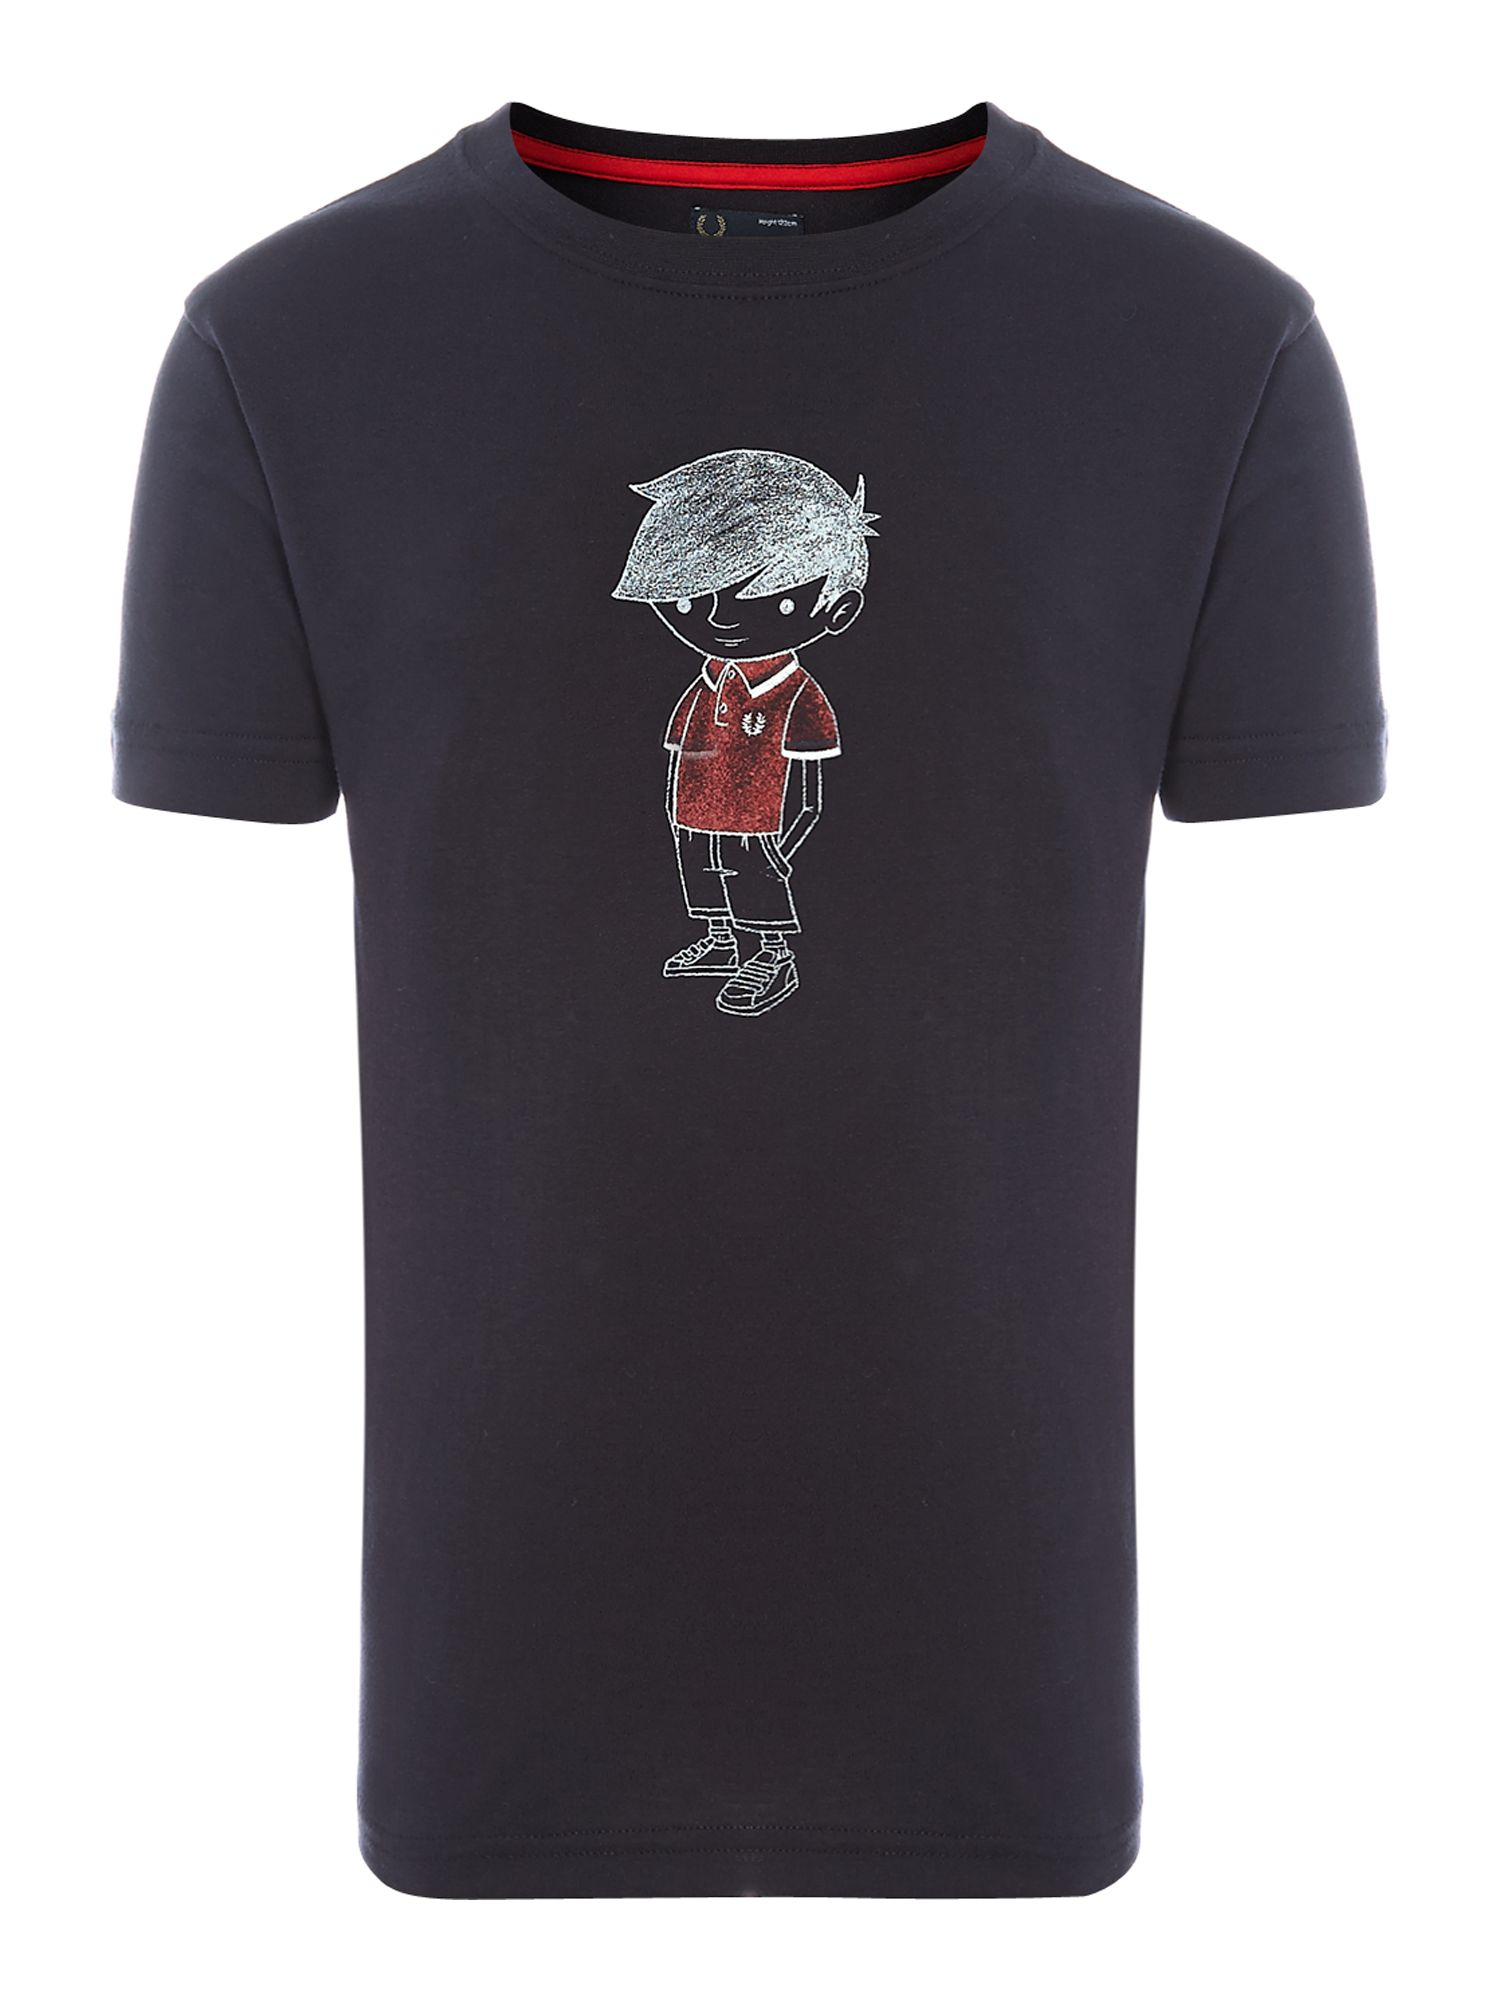 Little Fred graphic t-shirt